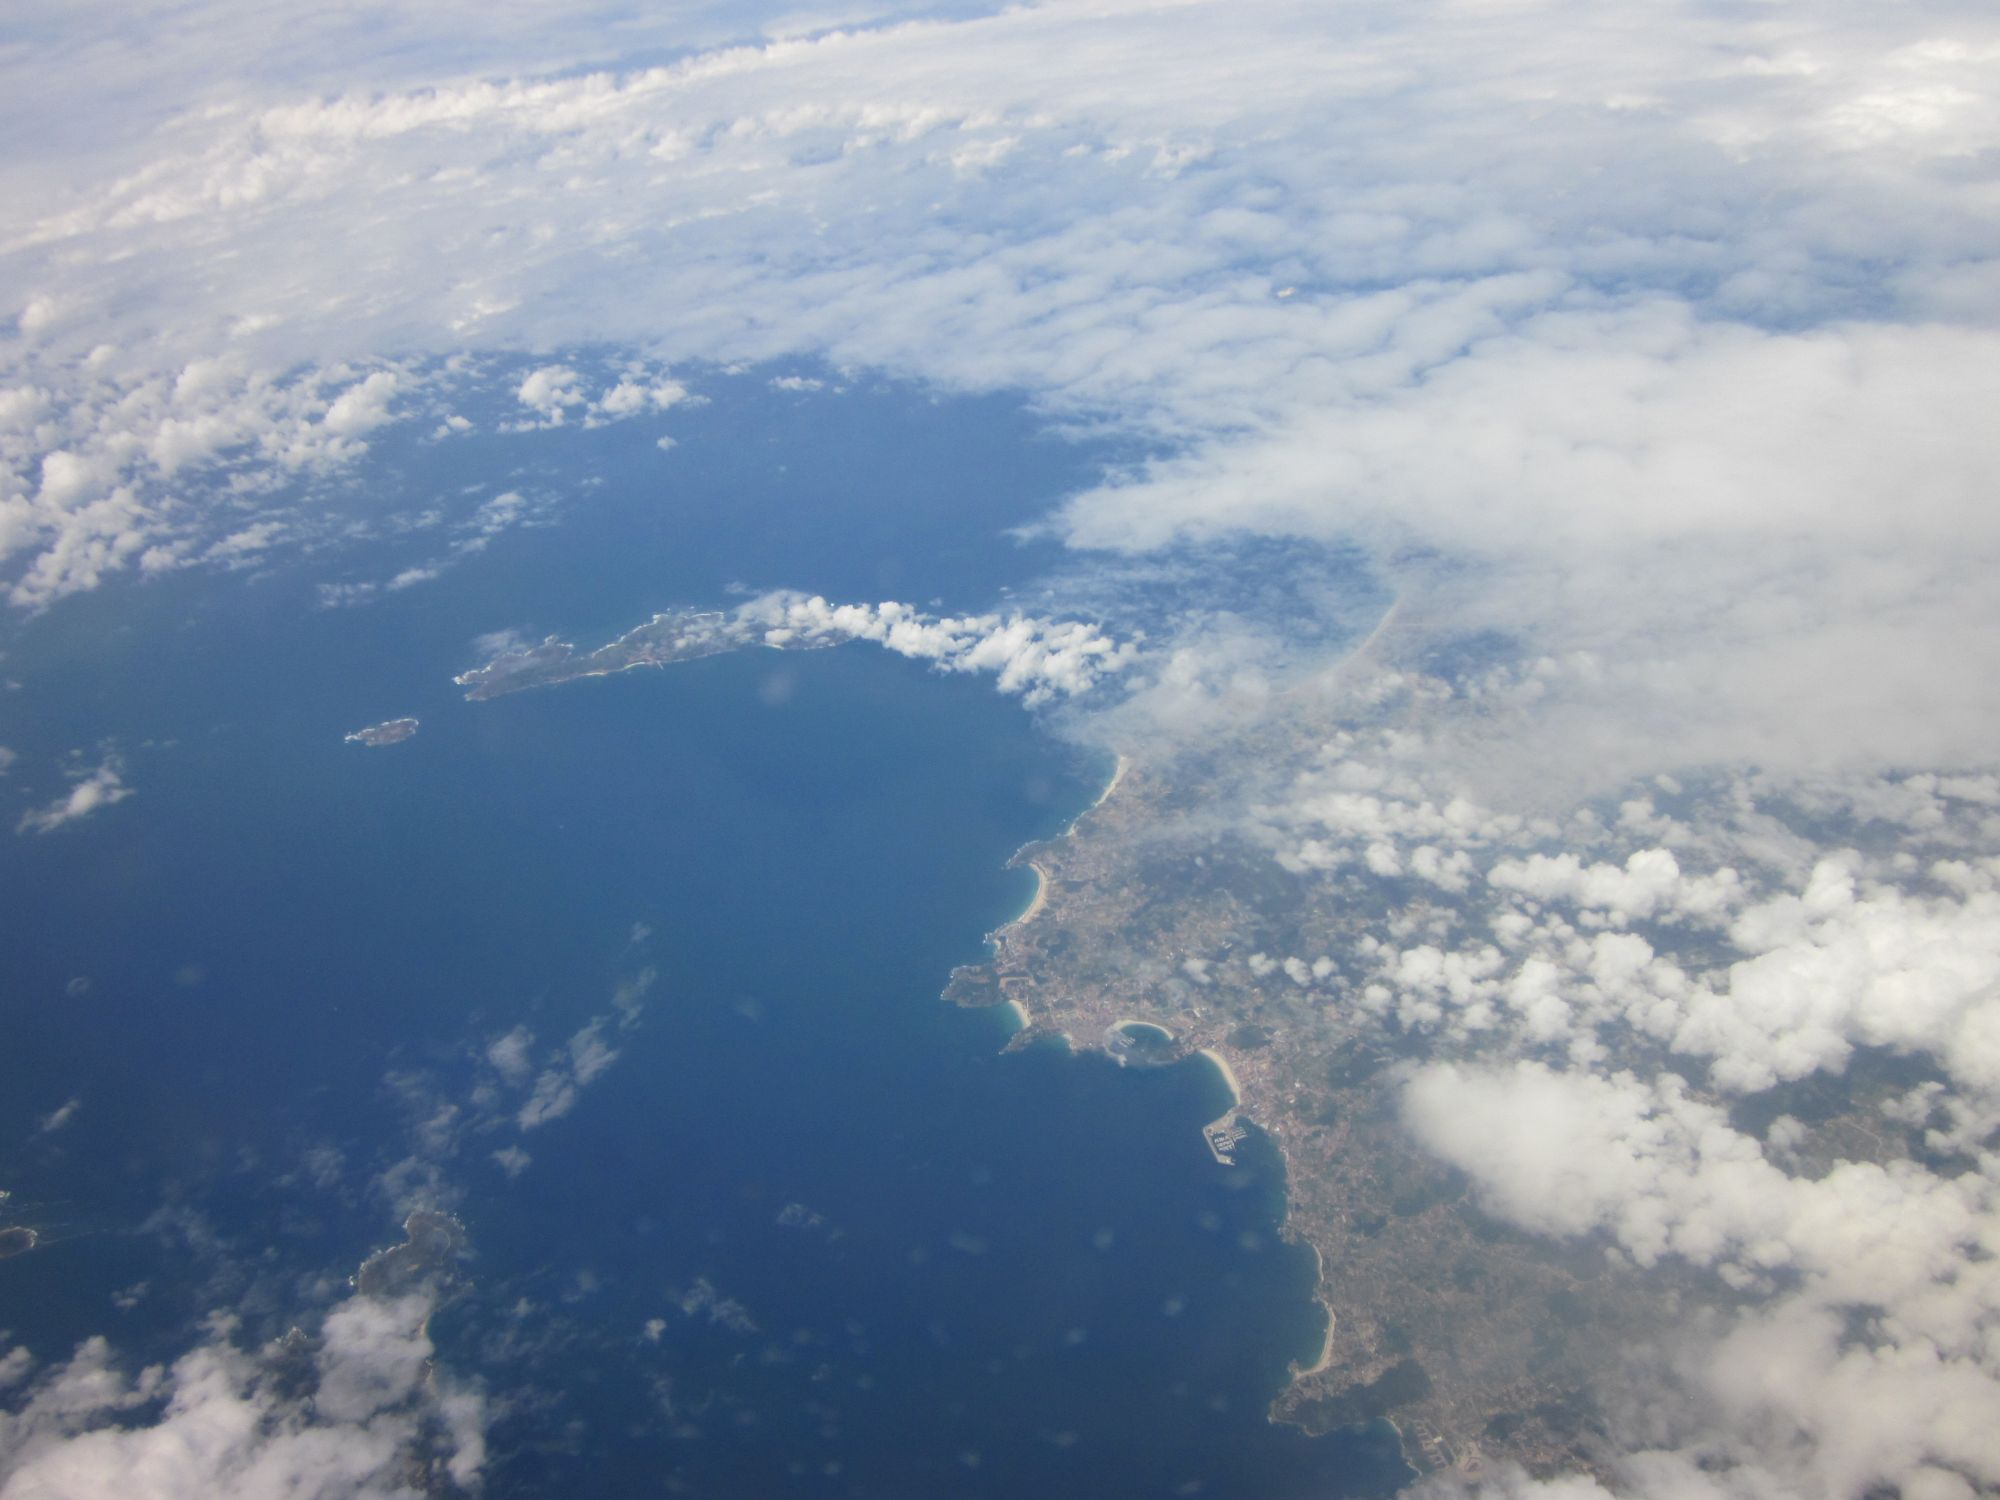 flying to Tenerife, Canary Islands